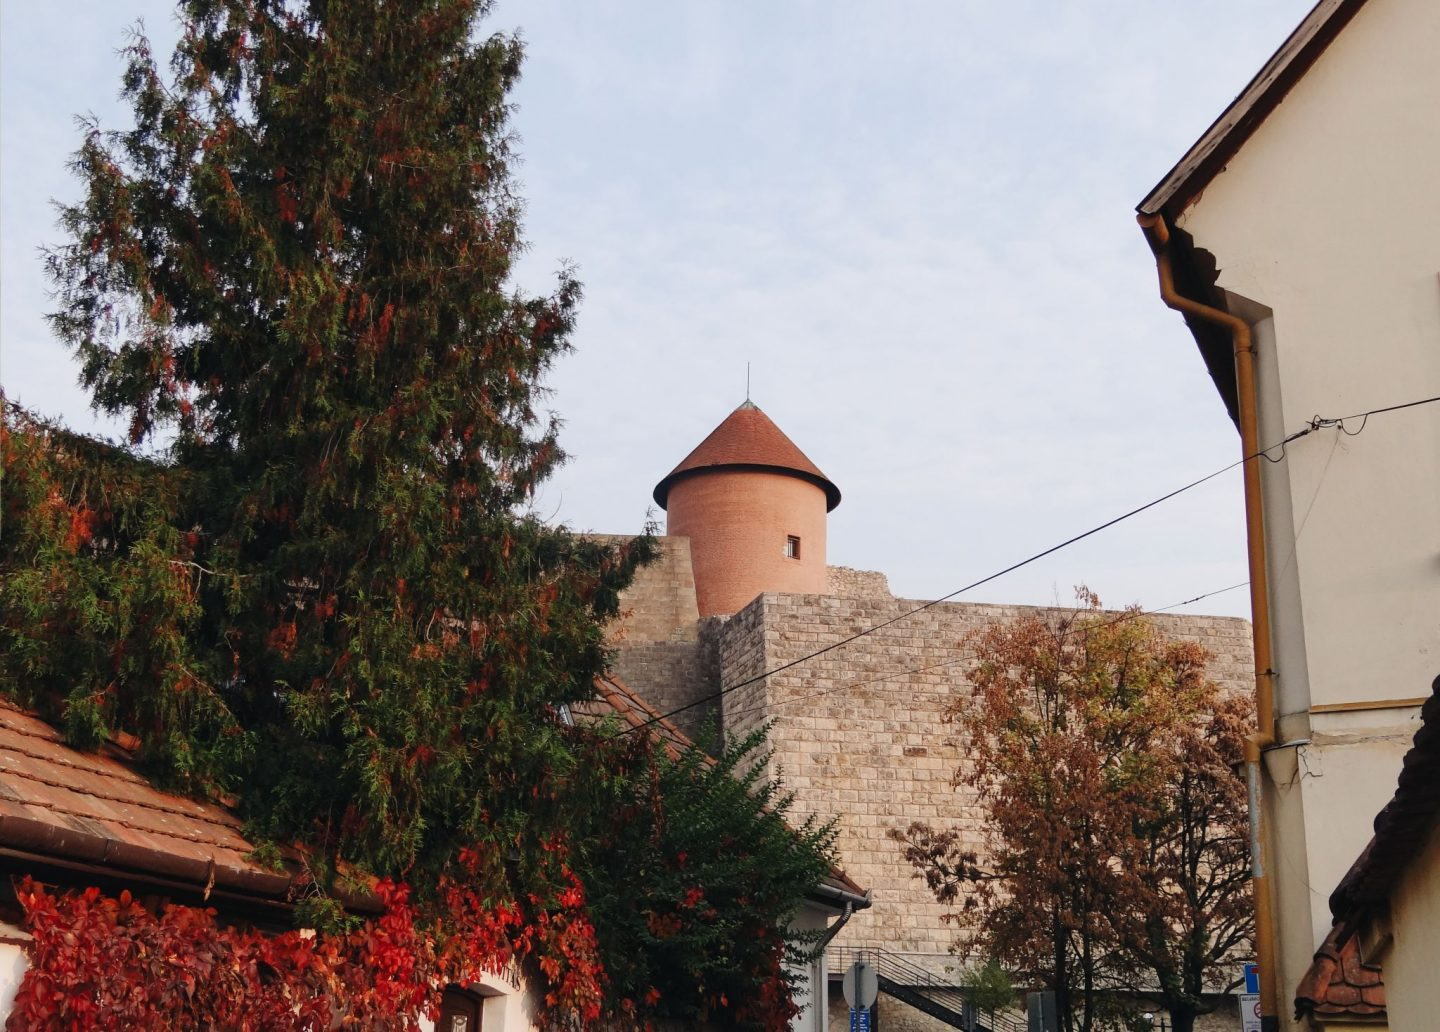 Eger castle from the street, Hungary